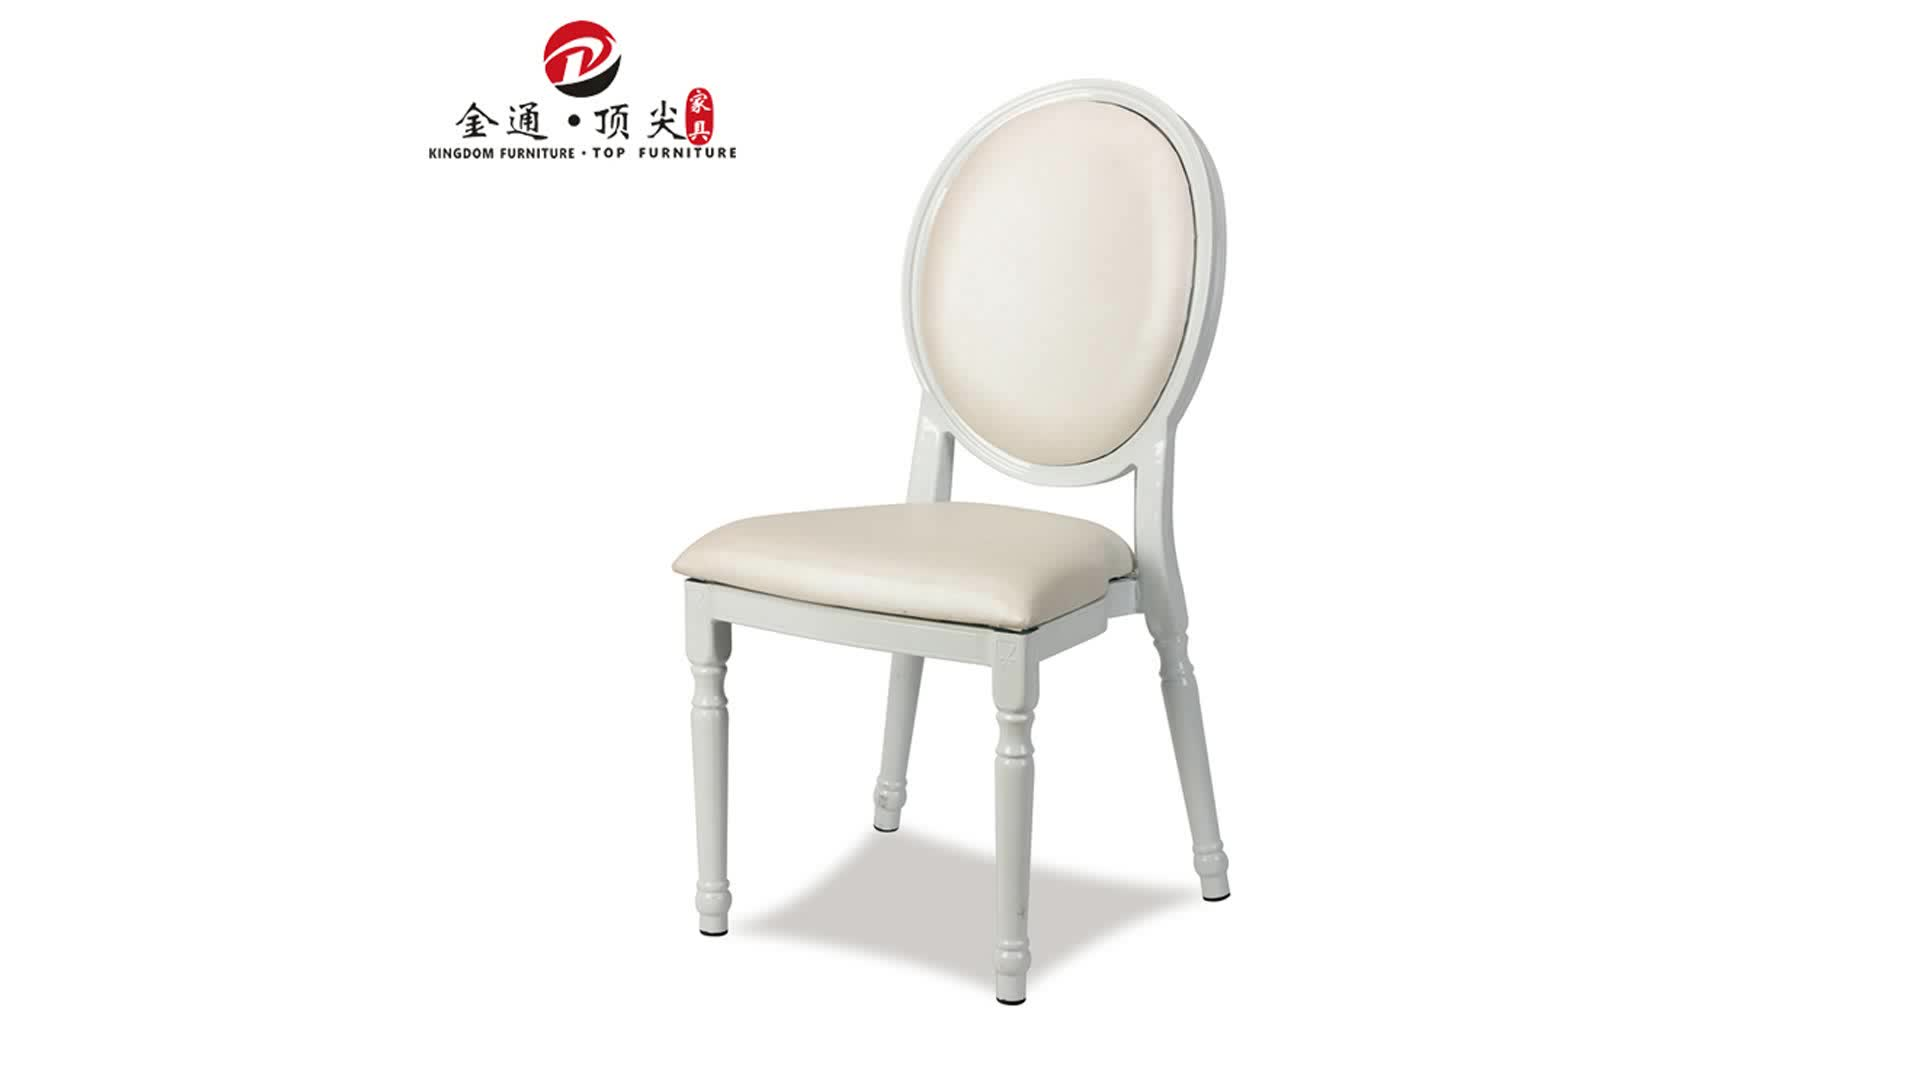 Luxury Chairs For Wedding Top Furniture Removable Cushion Round Back Throne Chairs